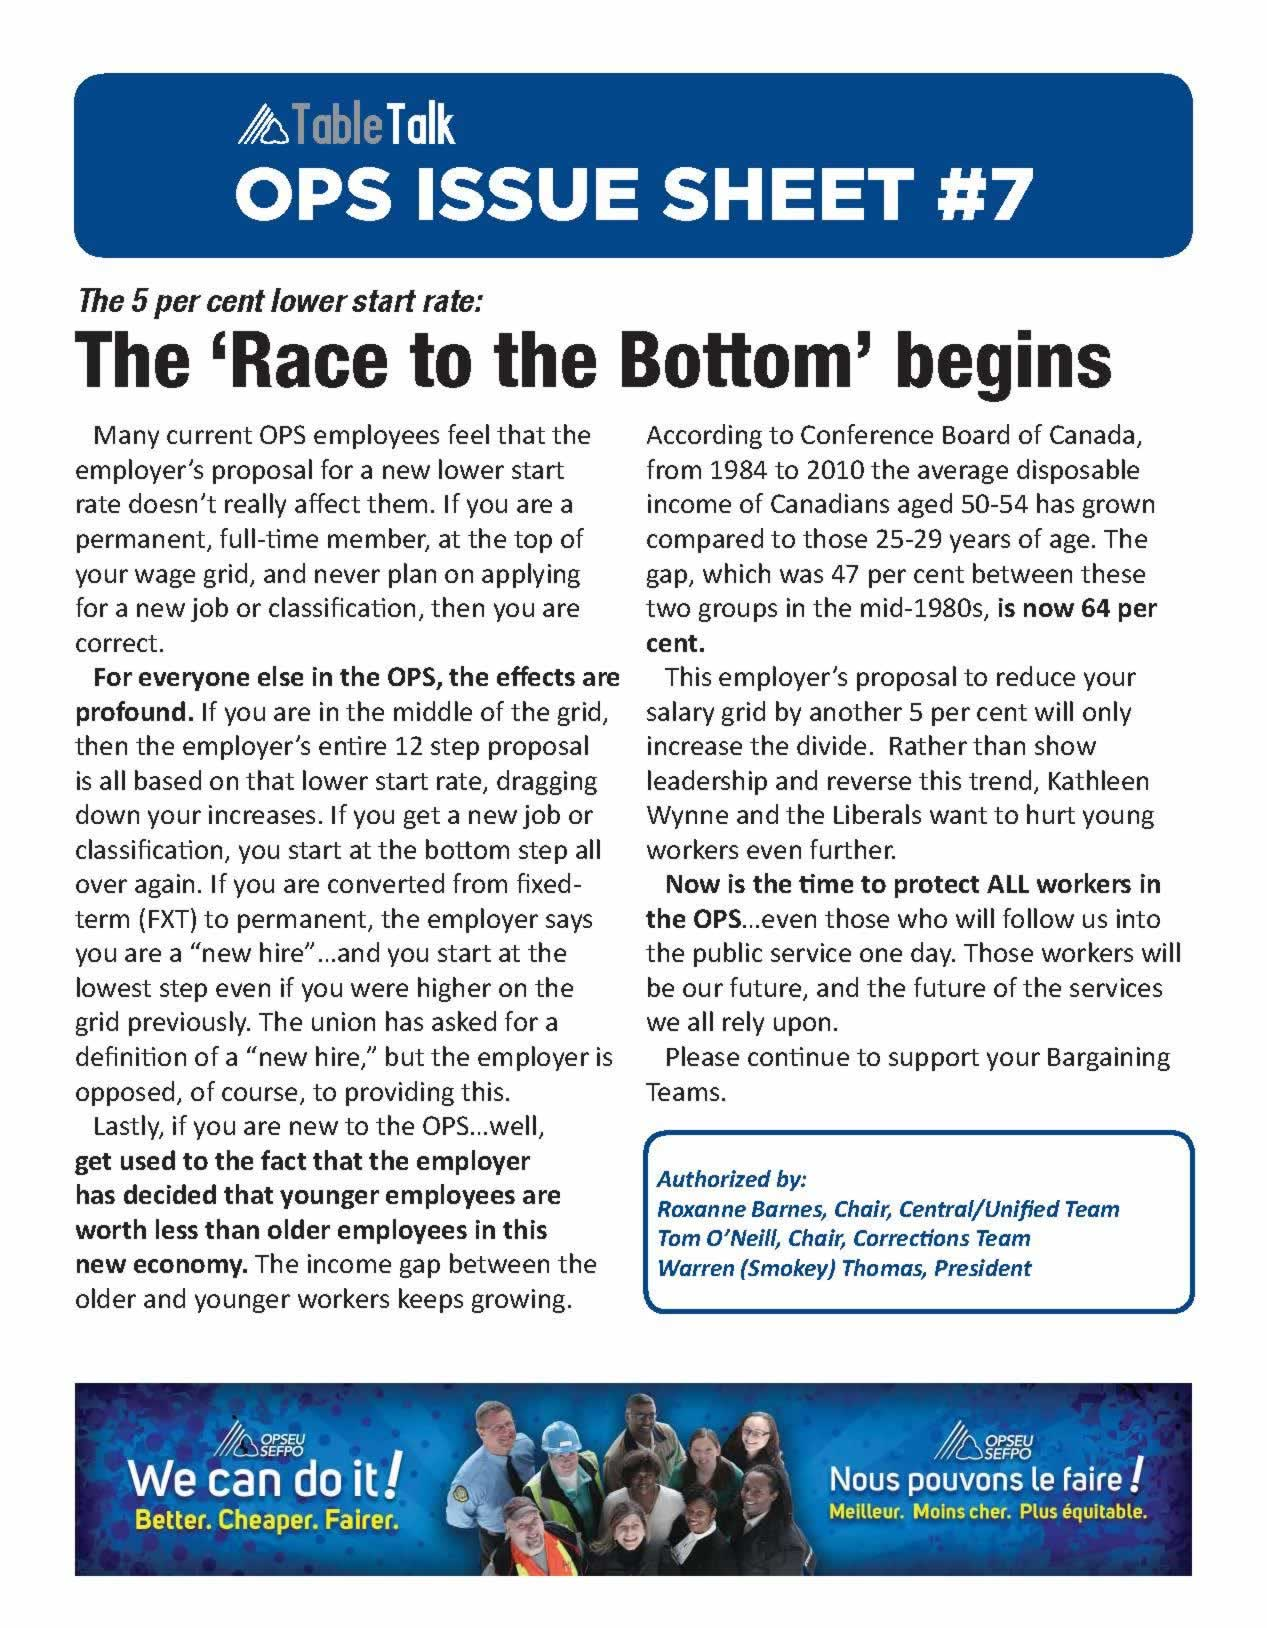 OPS Issue Sheet: the 5% lower start rate: the 'race to the bottom' begins